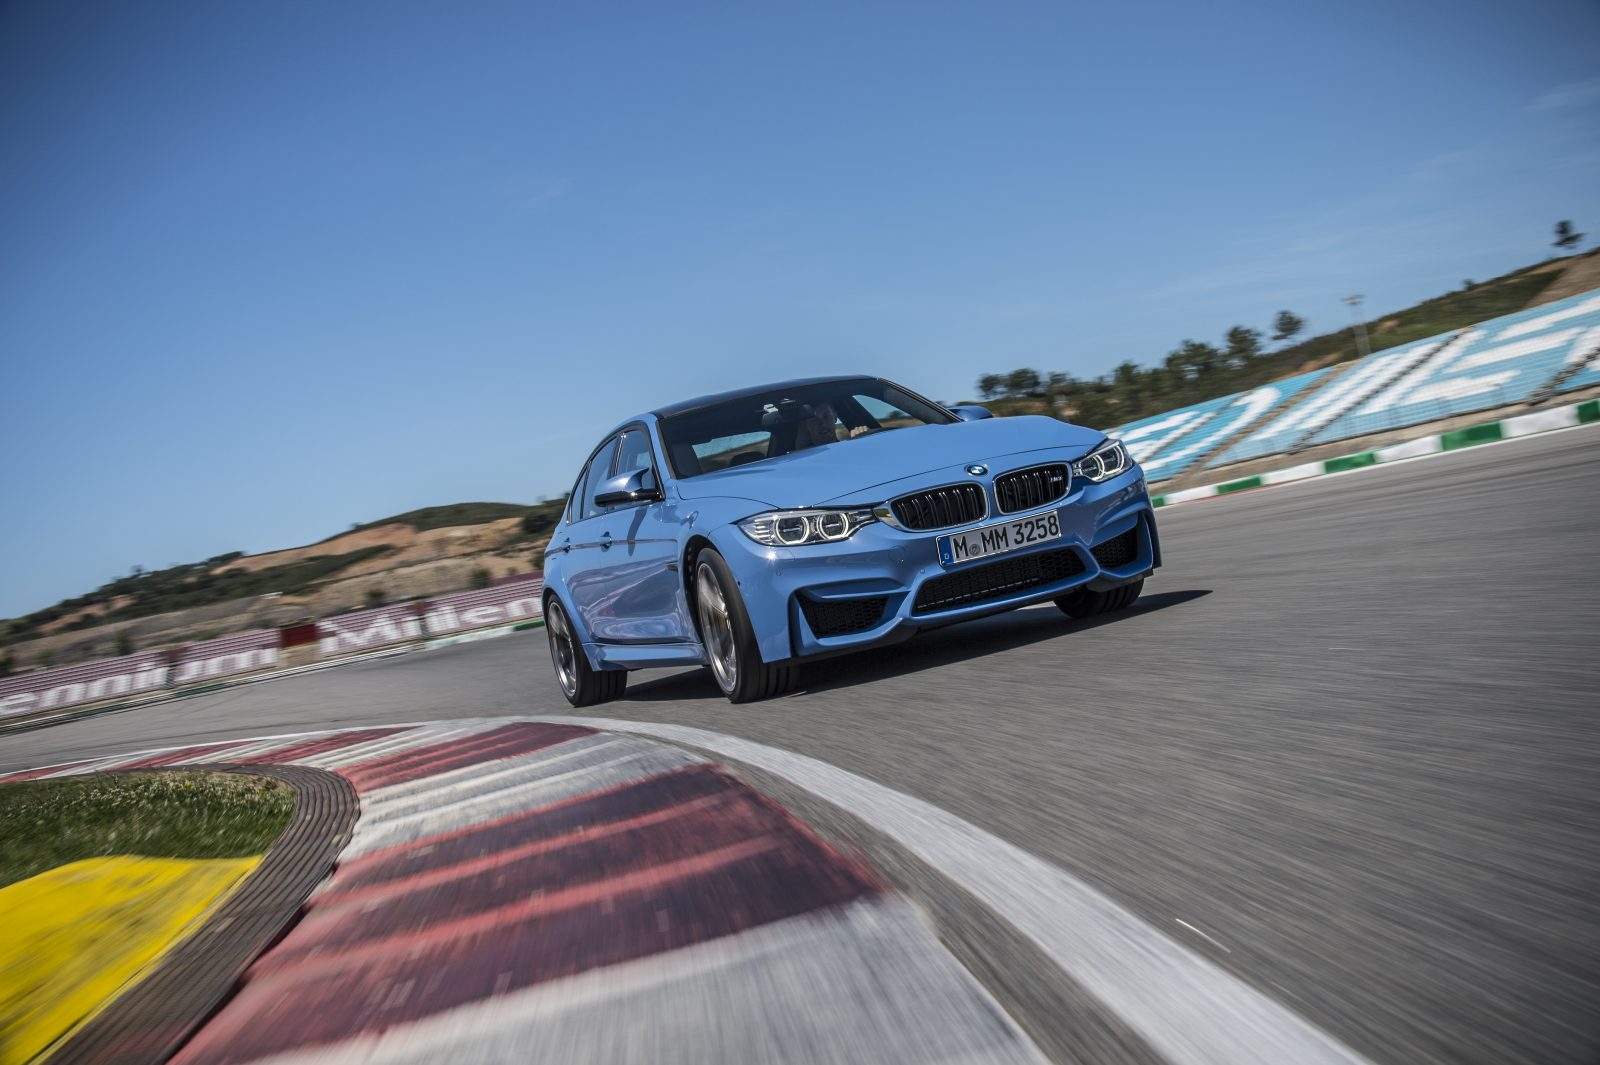 f80-m3-front-in-motion